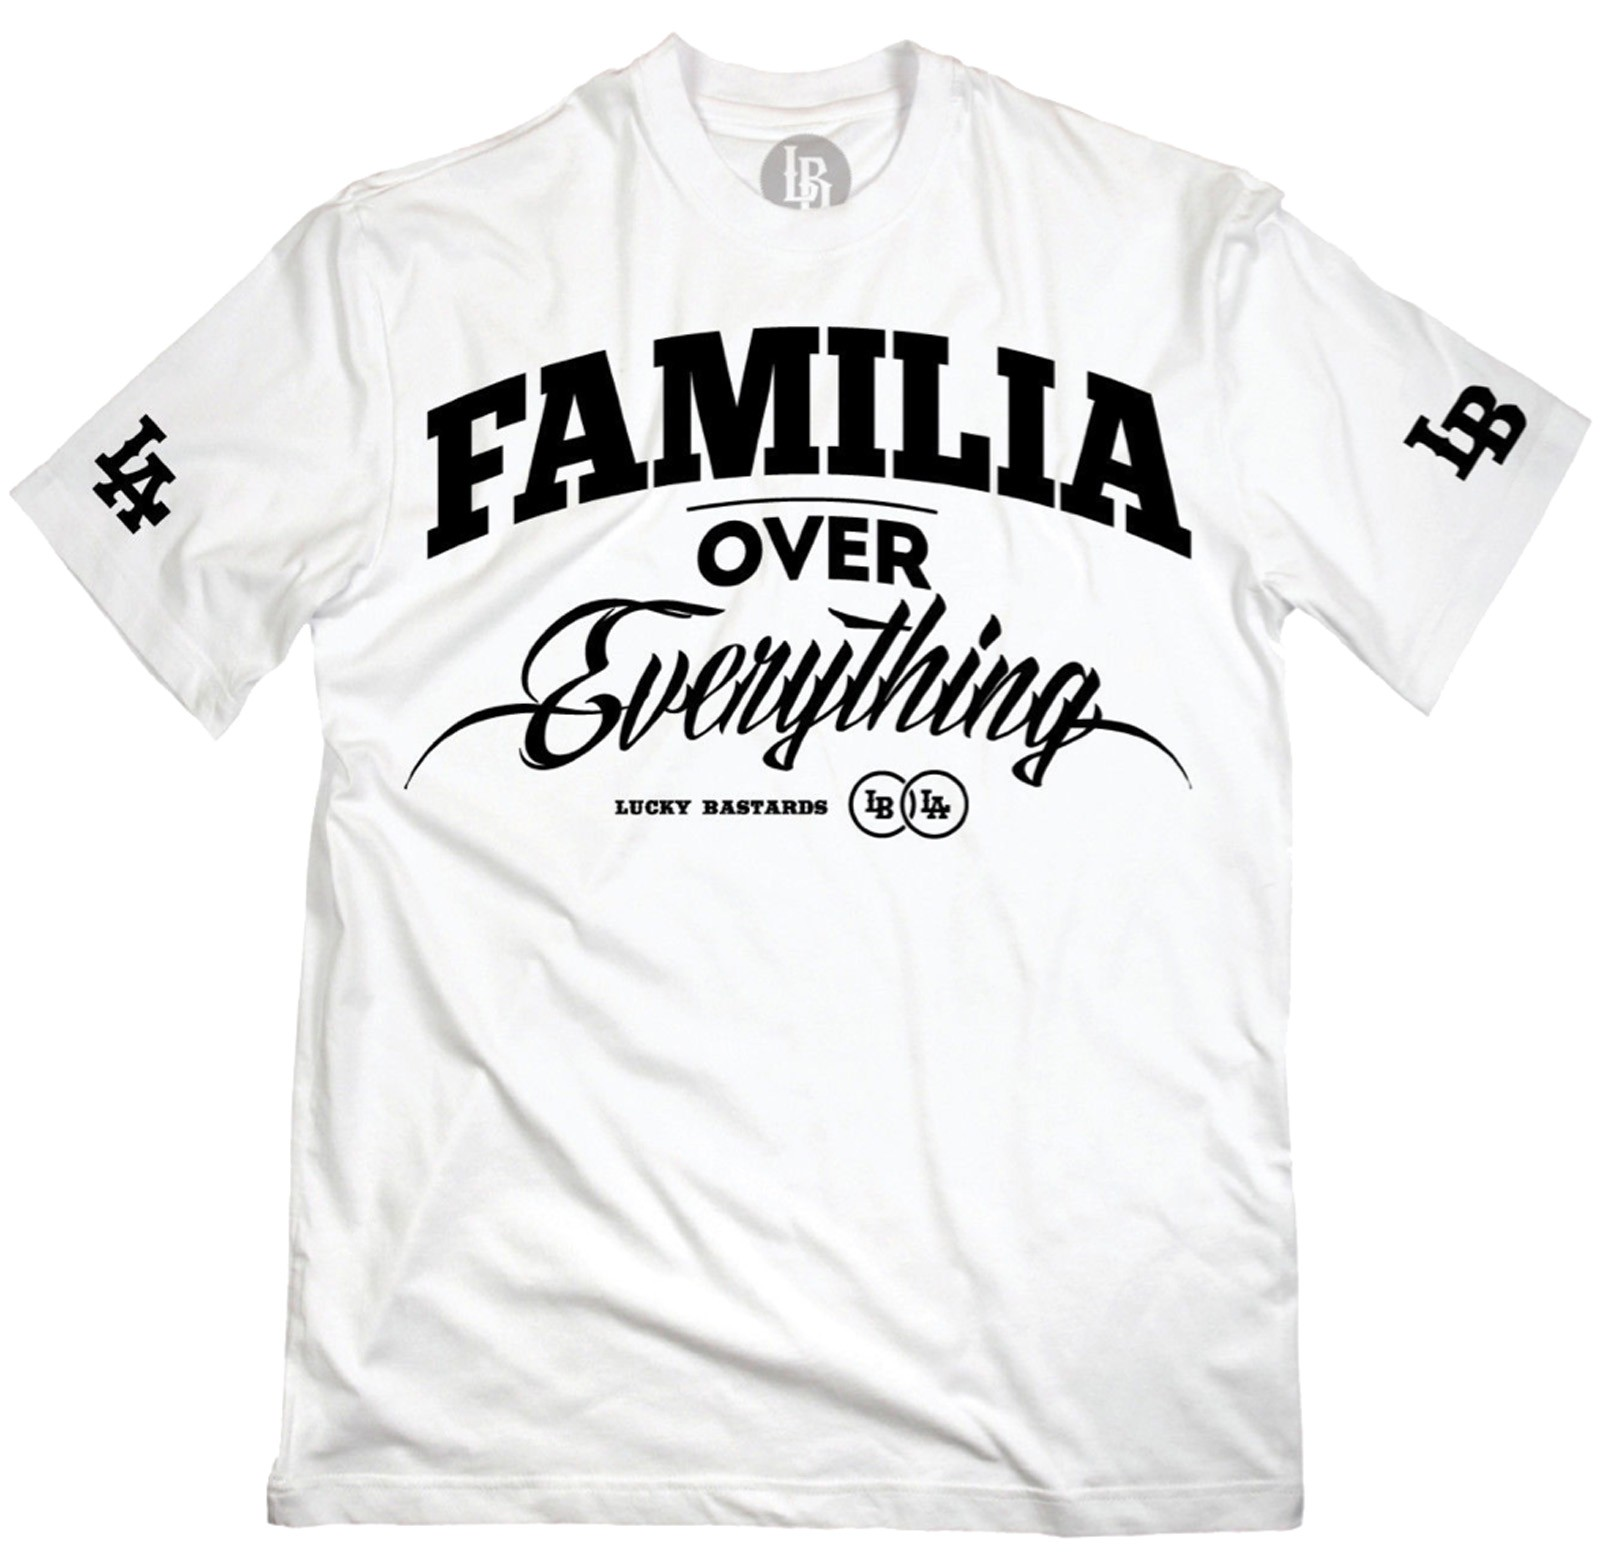 Lucky Bastards - Familia Over Everything T-Shirt Front